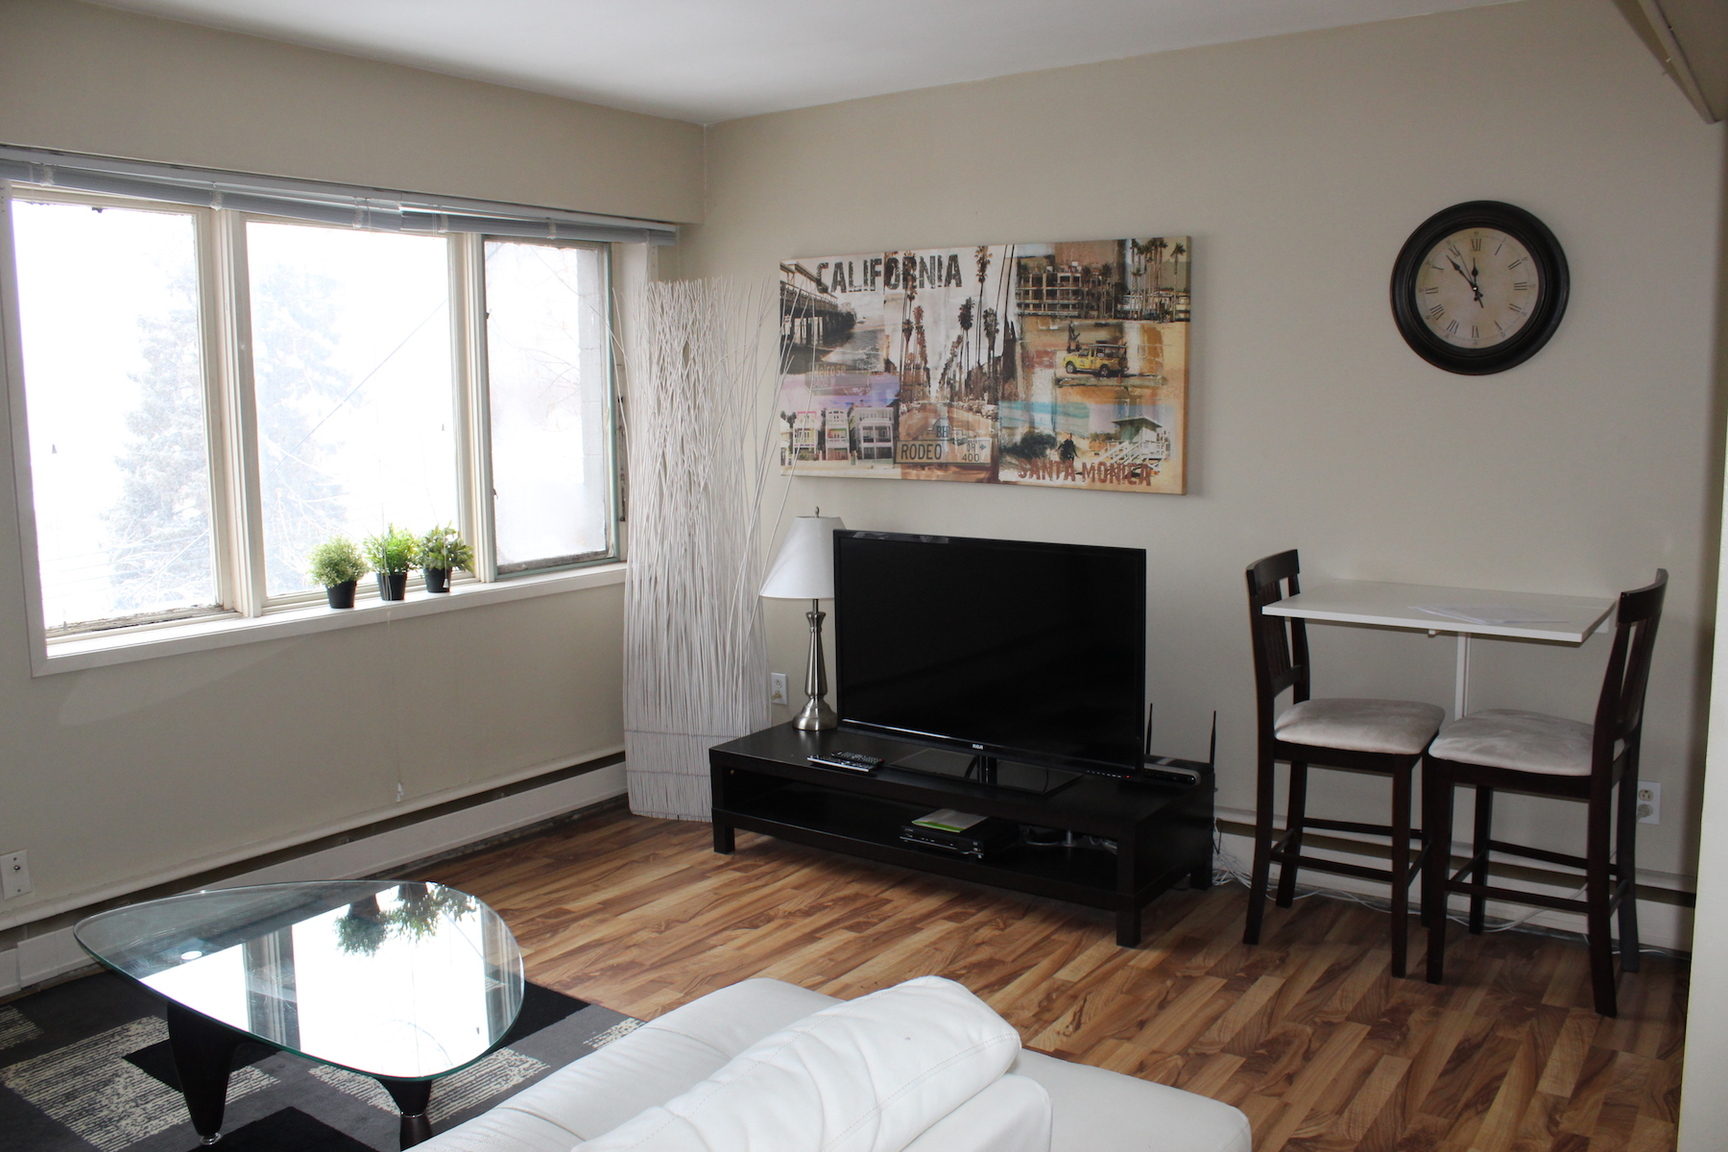 906 19 Ave SW, Calgary, AB - $1,000 CAD/ month